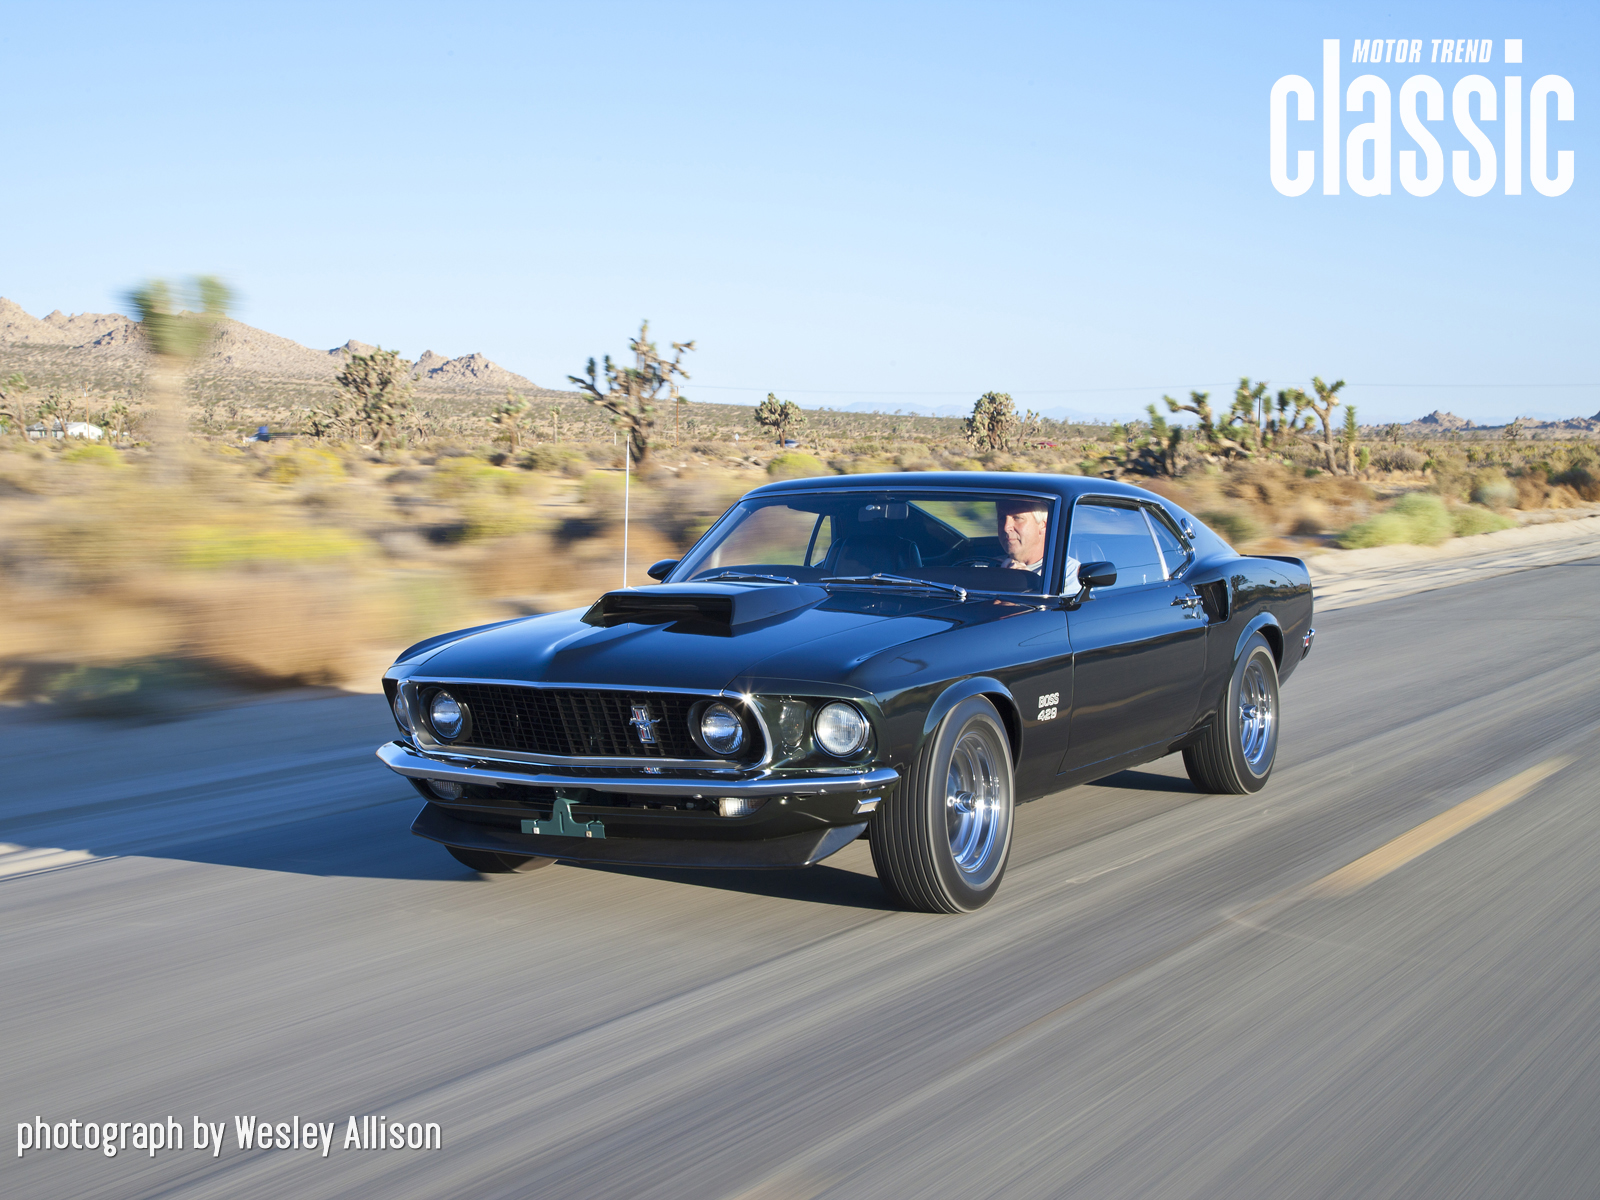 1969 Ford Mustang Boss 429 Wallpaper Gallery Photo Gallery   Motor 1600x1200